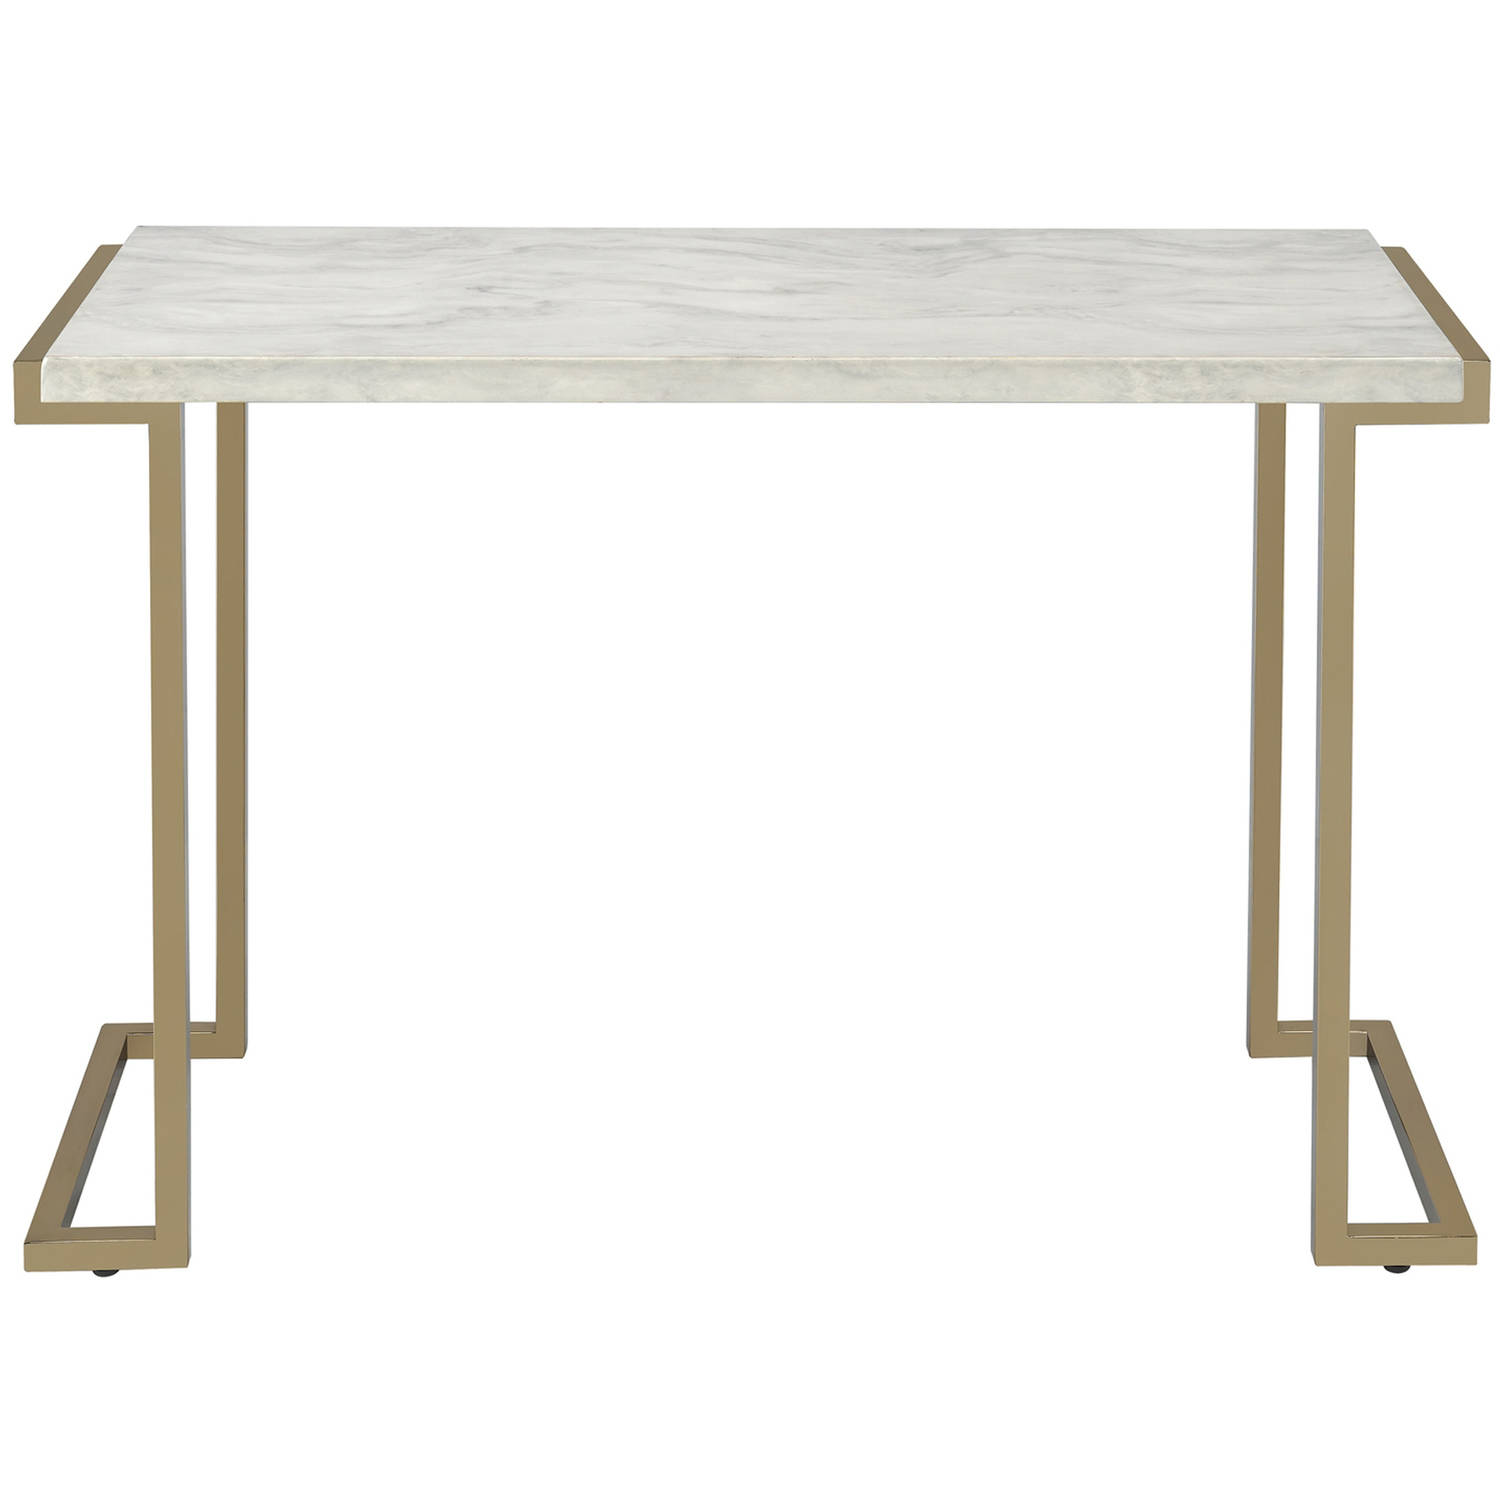 ACME Boice II Sofa Table, Faux Marble and Champagne by Acme Furniture